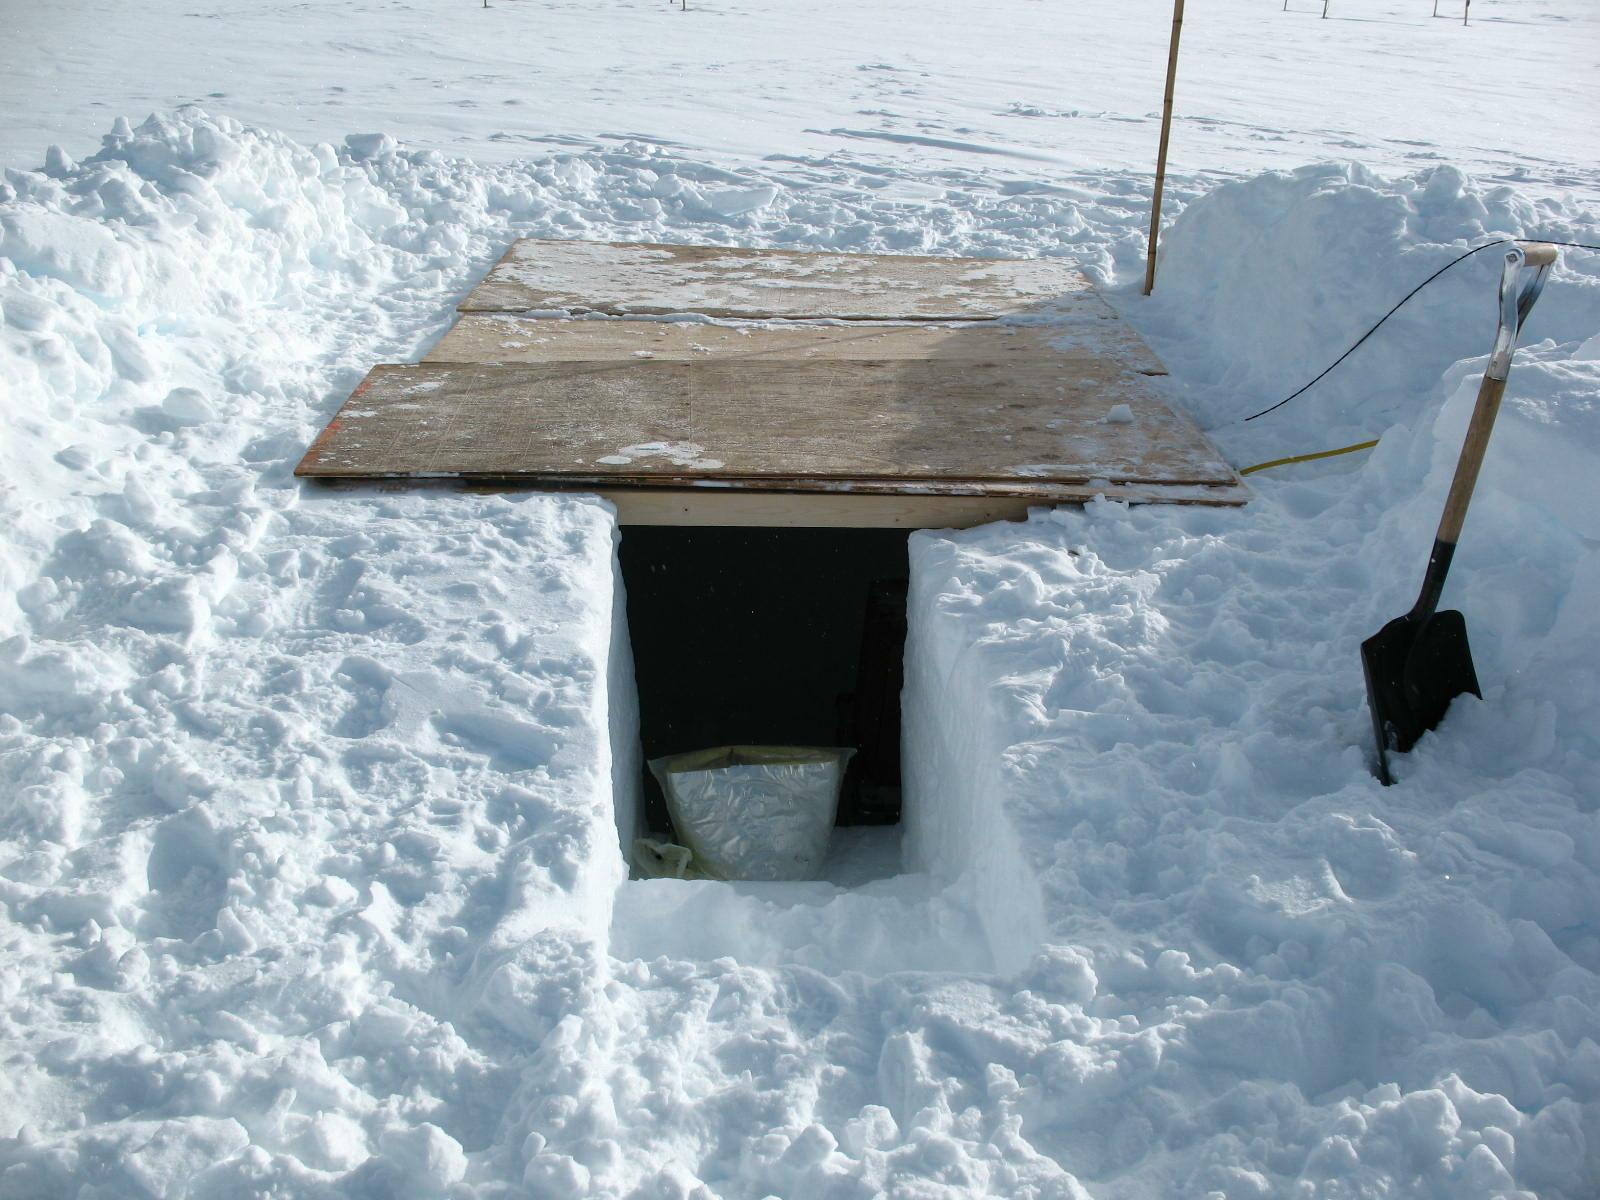 The seismometer vault has to be renewed every two years to keep it accessible. Its size is about 2x2 m and it is initially covered by maybe 50 cm of snow. Two years later the entrance can lay in 4 m depth. All images courtesy of Winfried Hanka